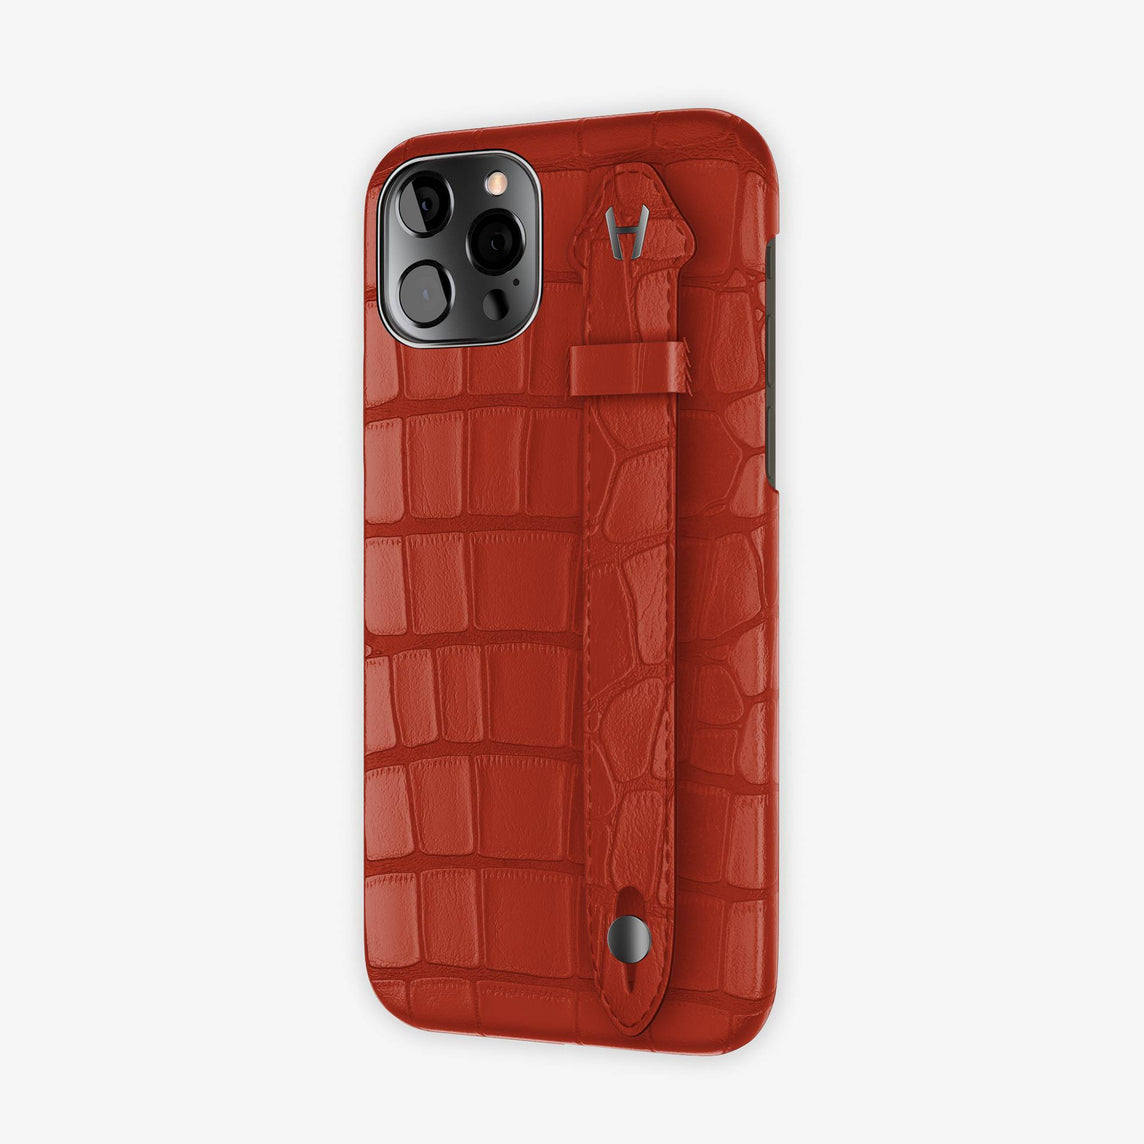 Alligator Side Finger Case iPhone 12 & iPhone 12 Pro | Red Ruby/Red Ruby -Black